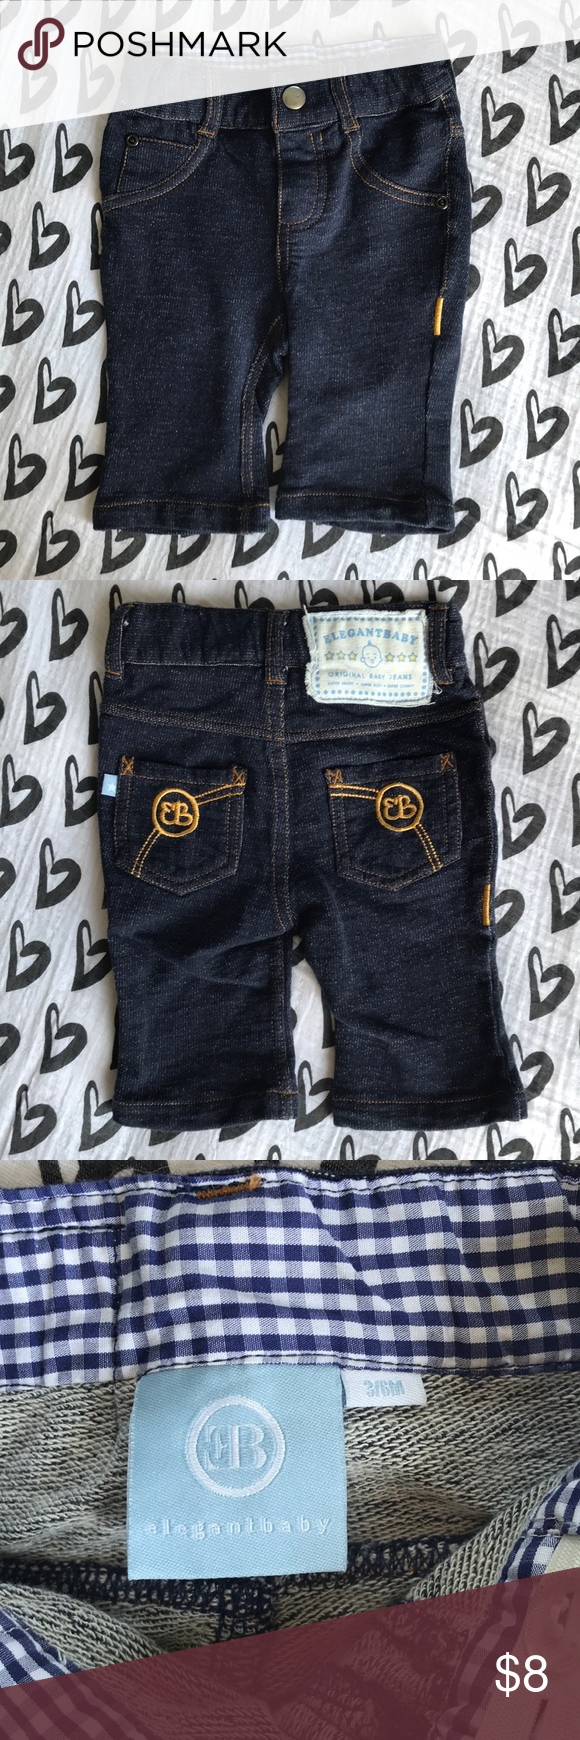 9630acdce1e Elegant Baby my 1st jeans 👖 NWOT Baby s First Jeans from Elegant Baby look  just like Daddy s. Made of comfortable 100% cotton knit denim